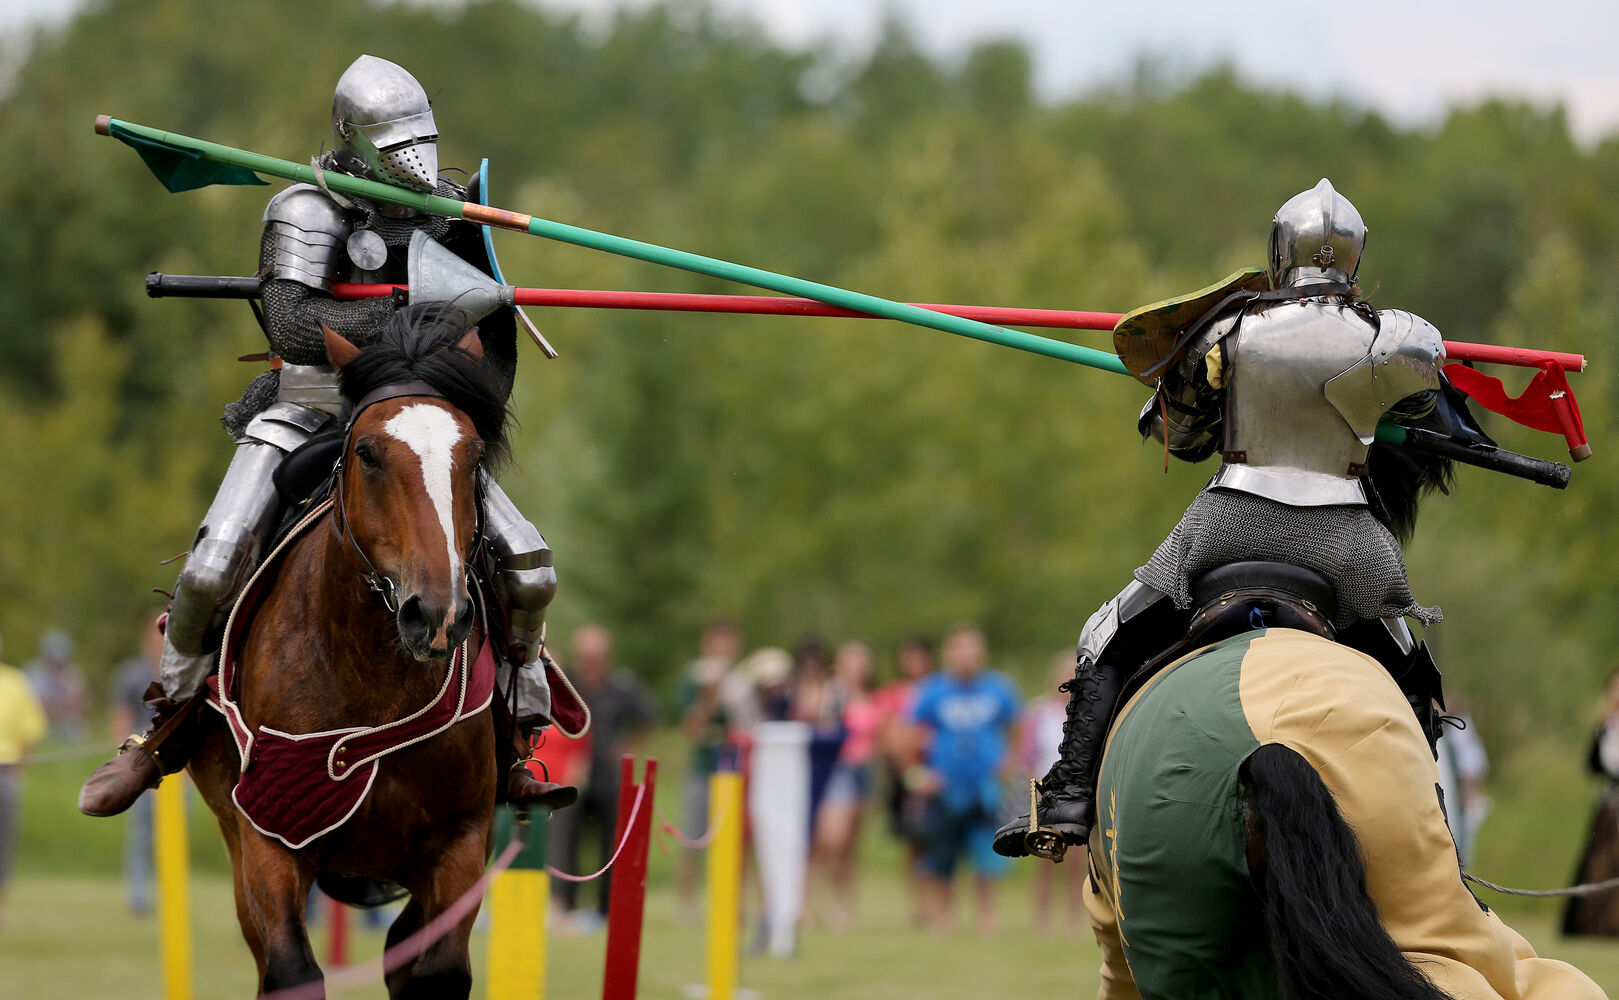 A jousting competition at the Medieval Festival in Cooks Creek Saturday. (Trevor Hagan / Winnipeg Free Press)